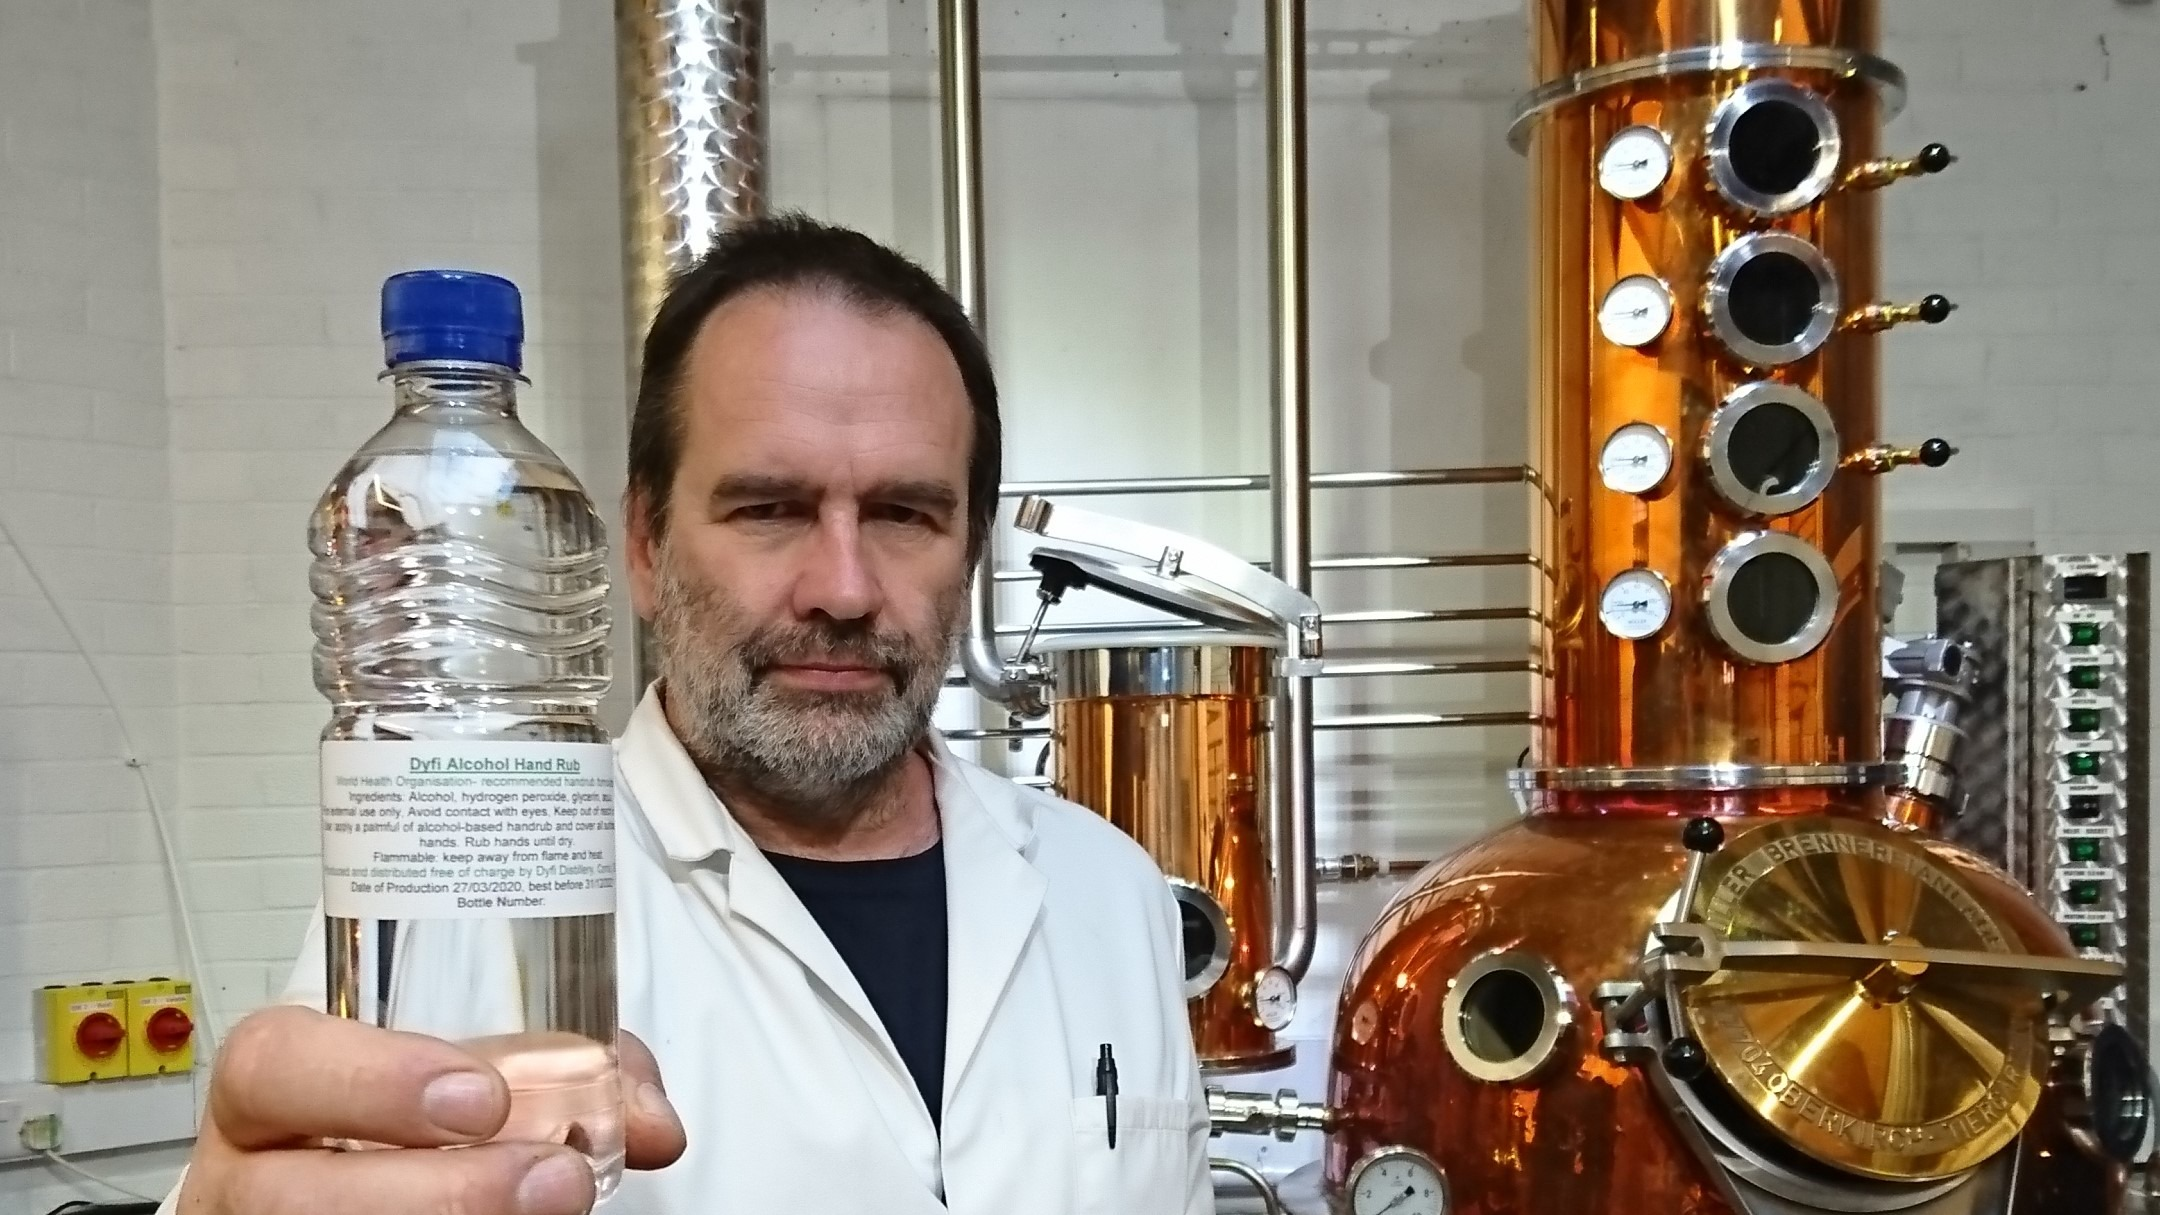 Welsh Gin Producers Make And Give Away More Than 200,000 Bottles Of Hand Sanitiser photo